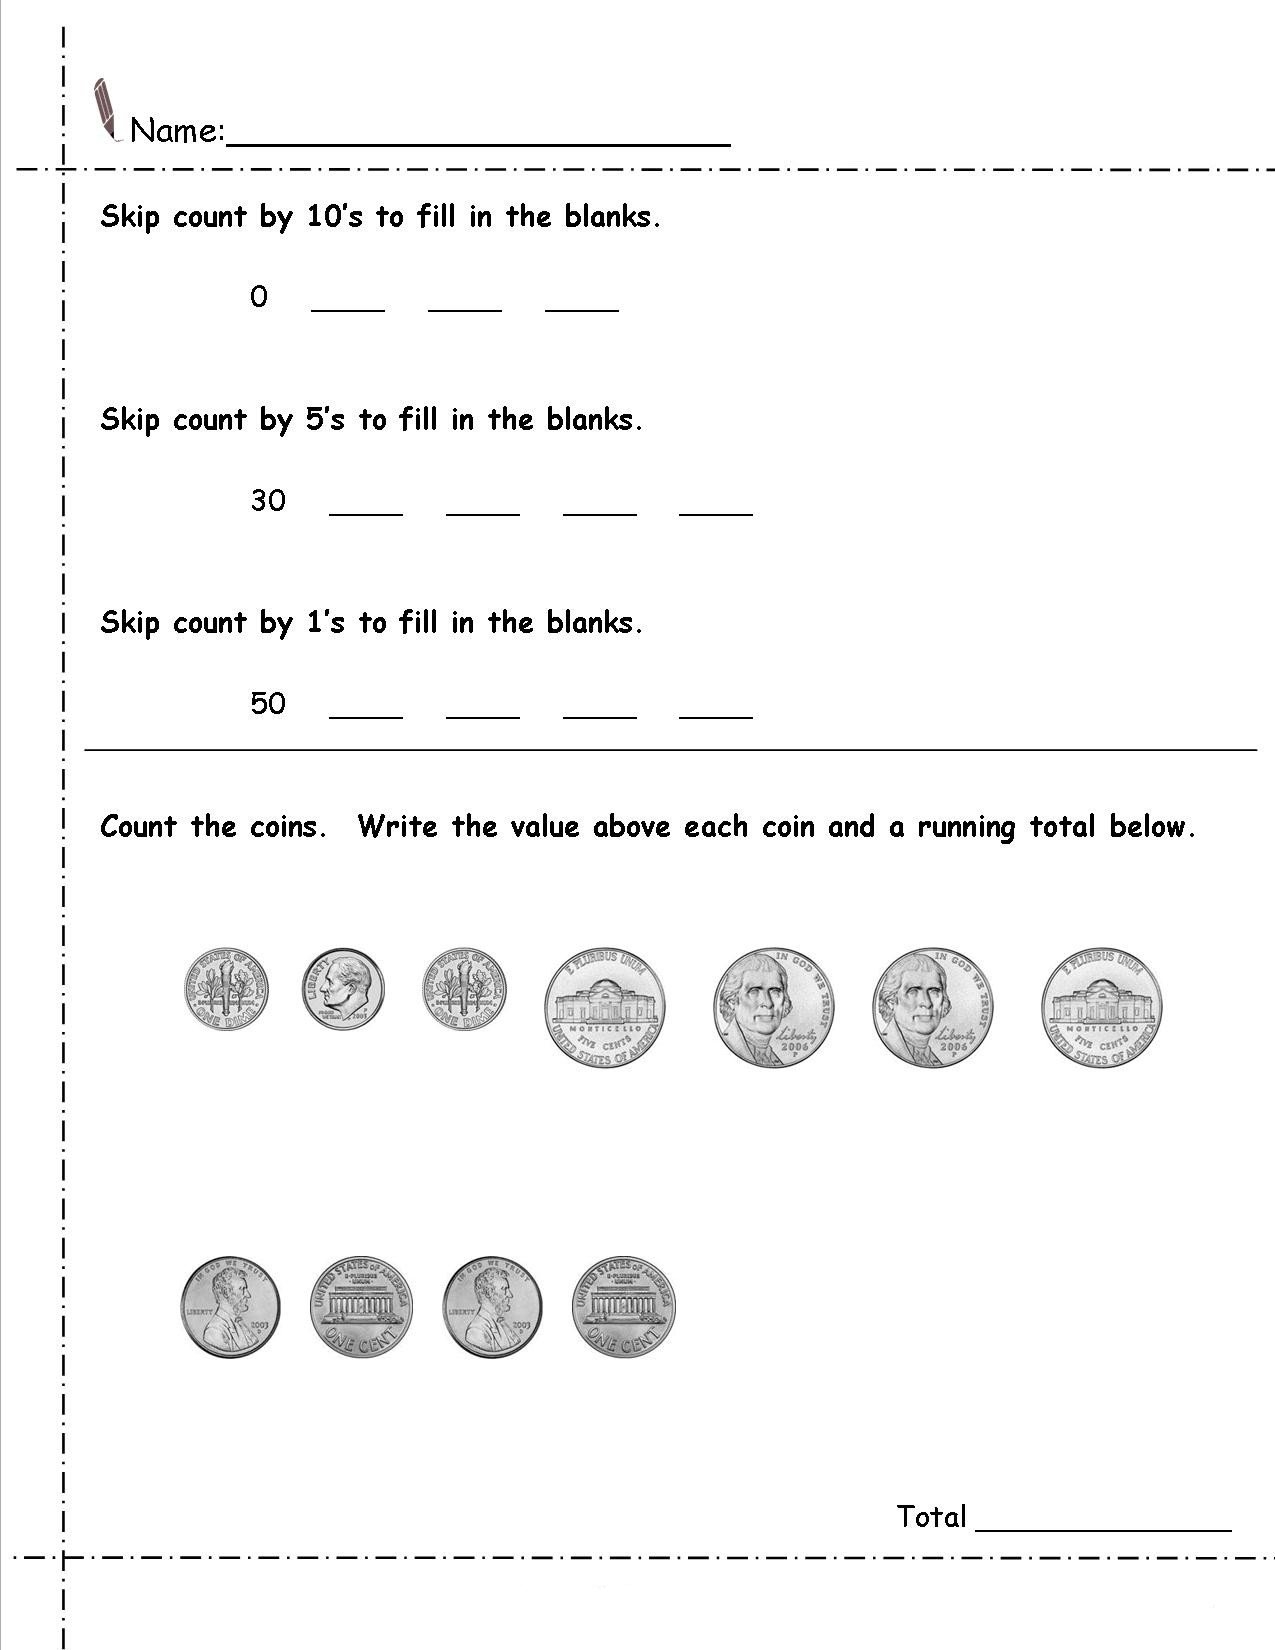 Counting Coins Worksheets 2nd Grade 2nd Grade Money Worksheets Best Coloring Pages for Kids